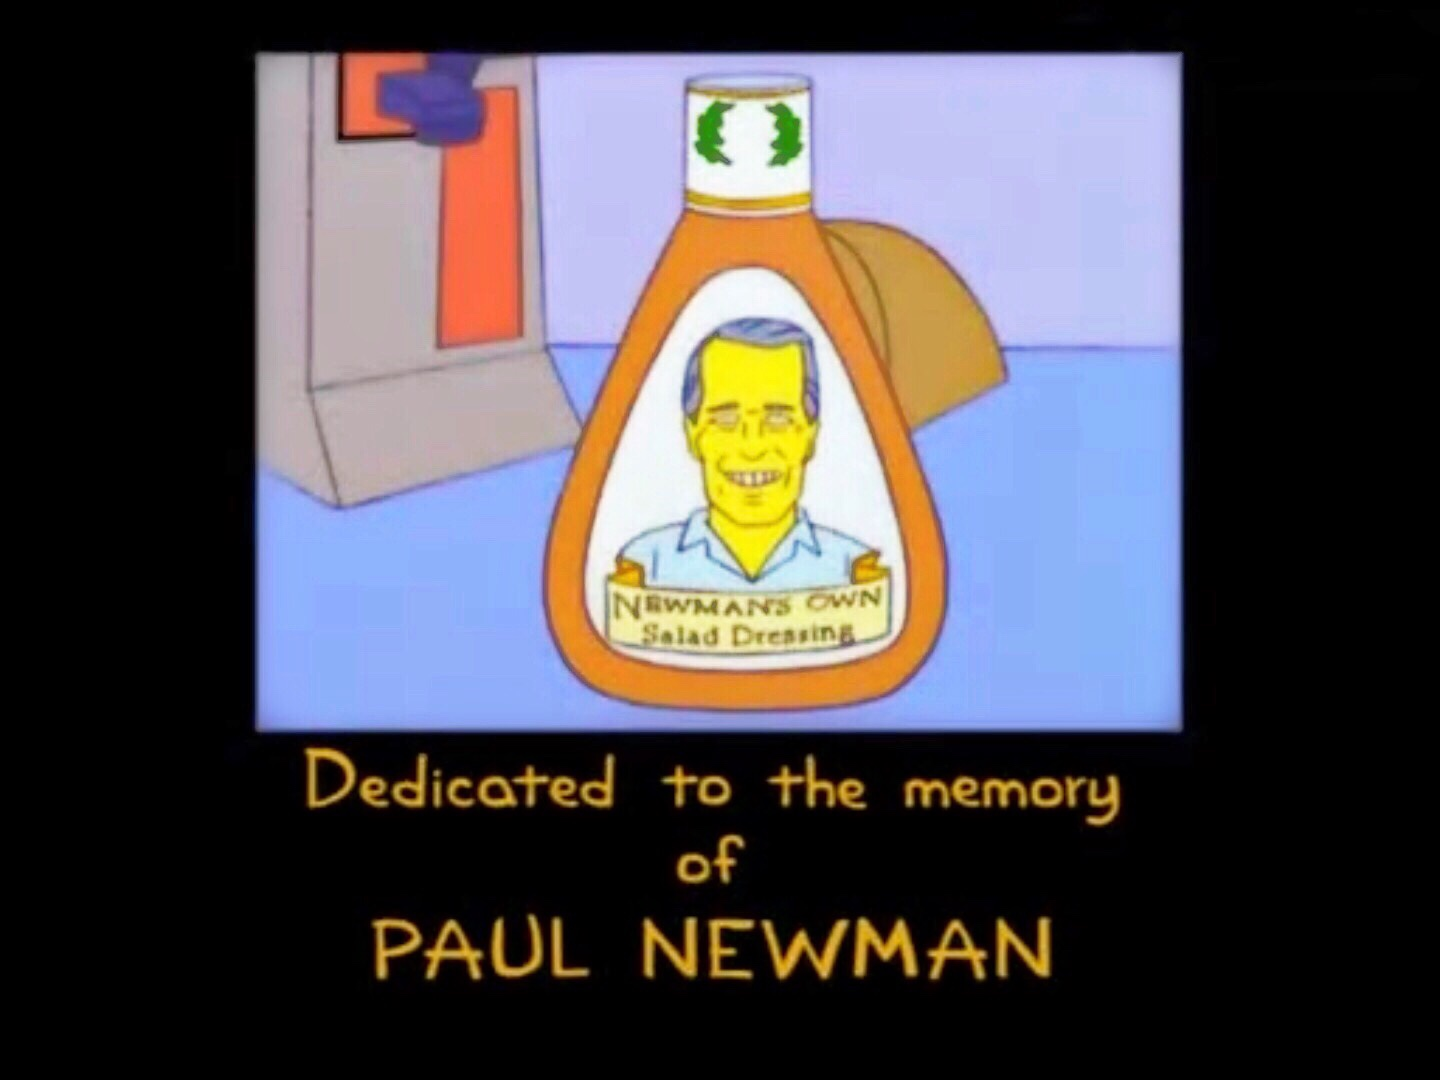 File:Paulnewmandedication.jpg